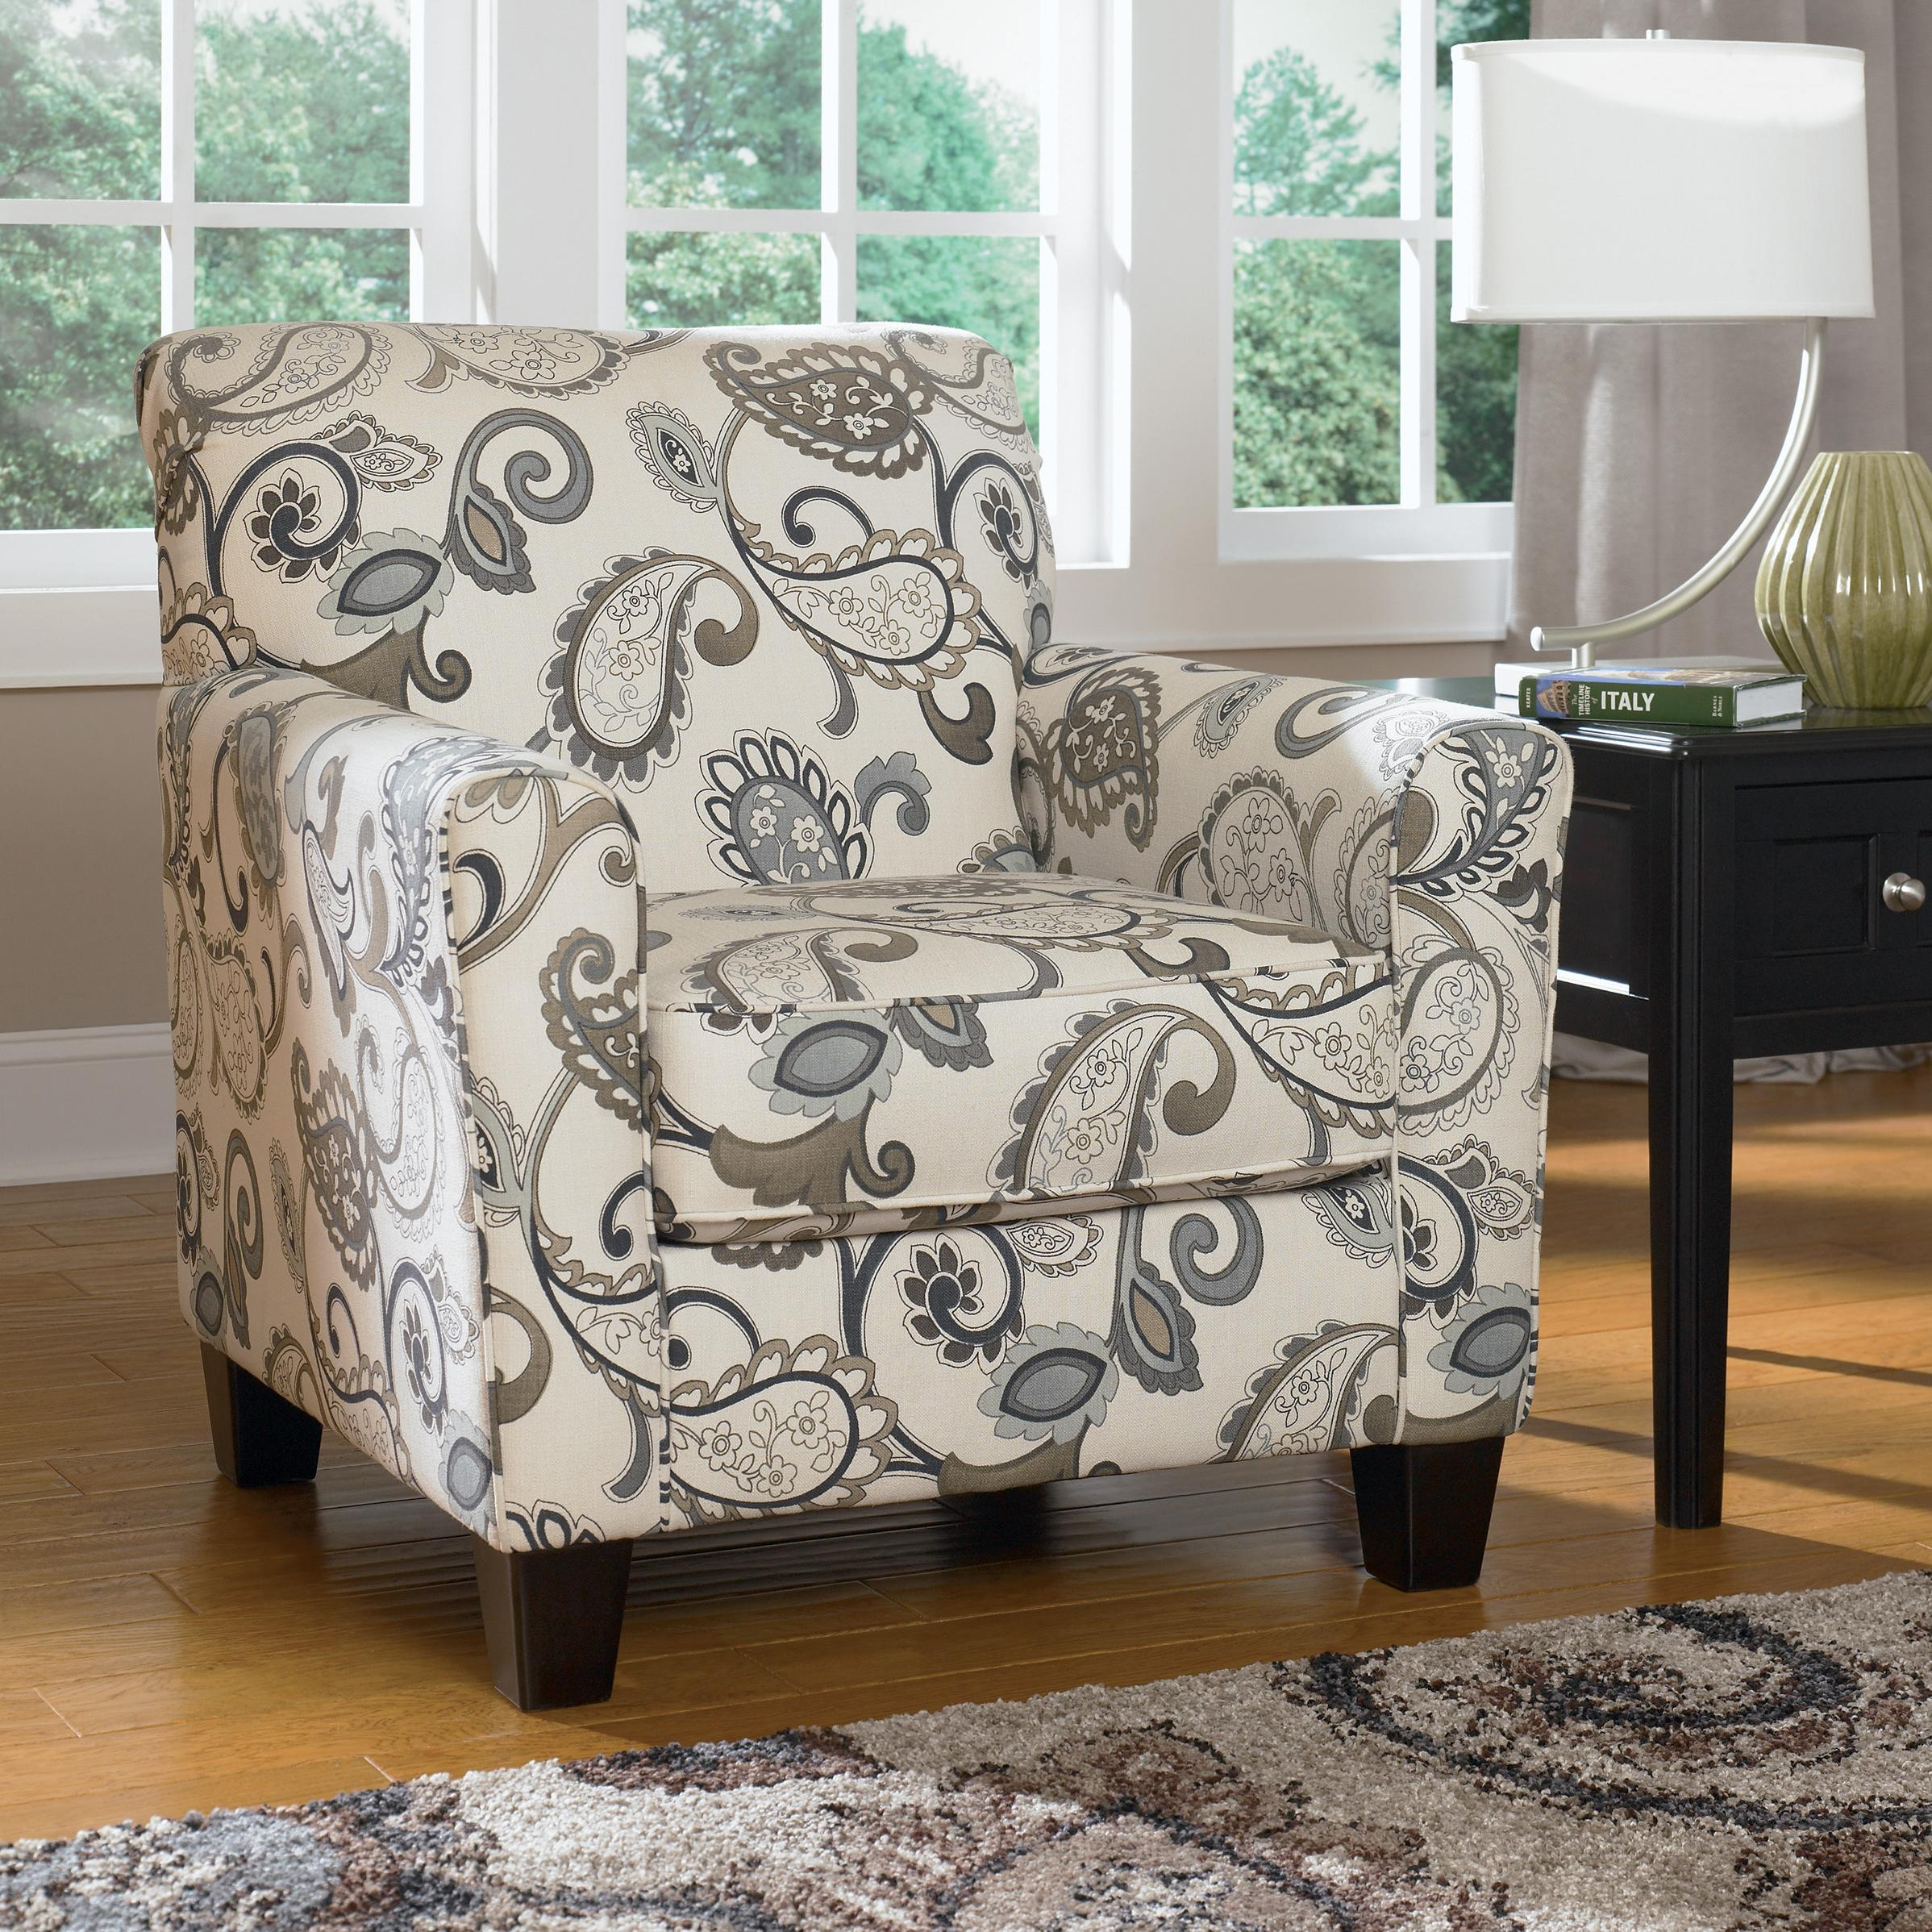 Yvette - Steel Accent Chair by Ashley Furniture at Lapeer Furniture & Mattress Center